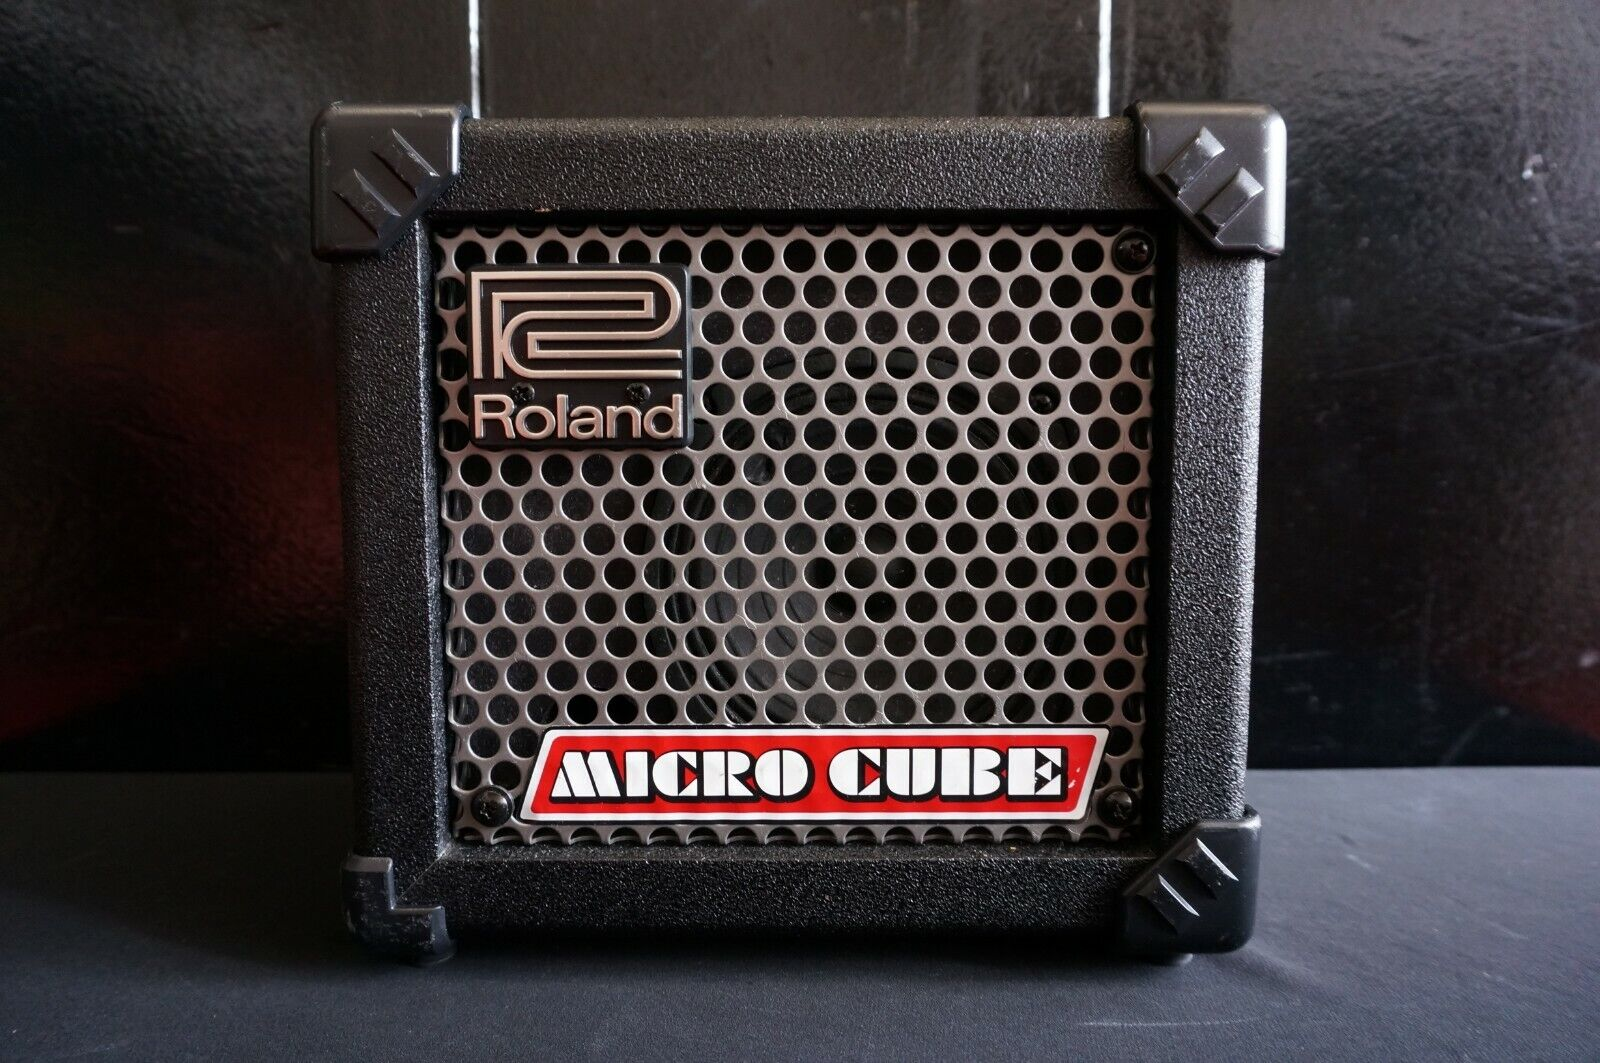 Roland Micro Cube Guitar Amplifier W  Built In Tuner and Effects